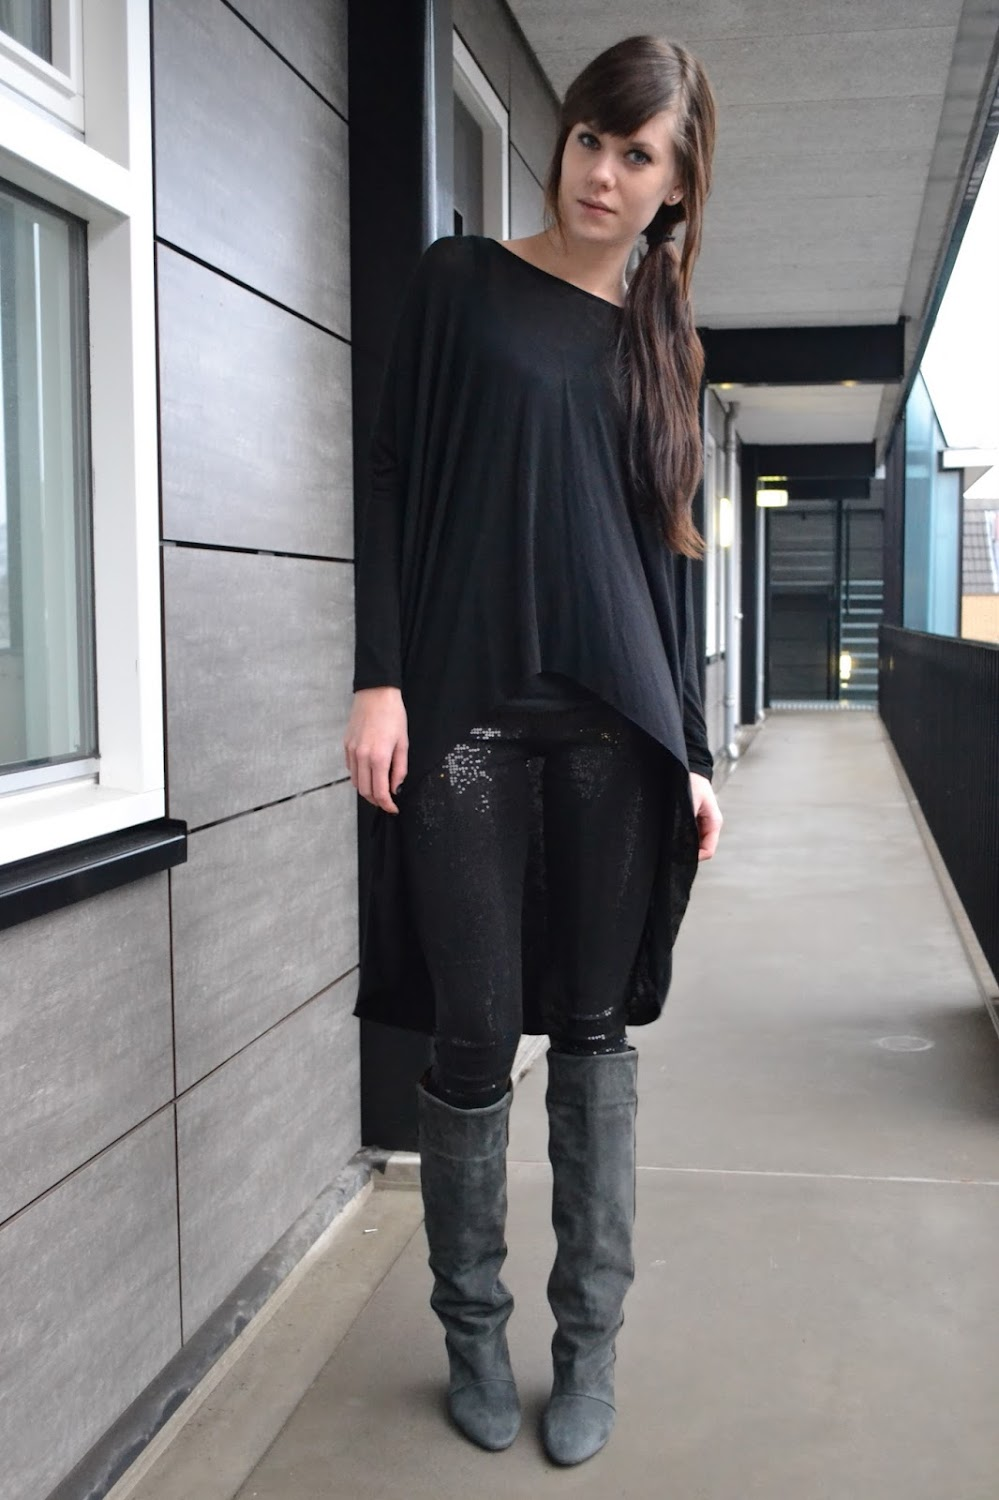 Leggings And Boots http://lovelybylucy.com/2012/01/outfit-closing-2011/